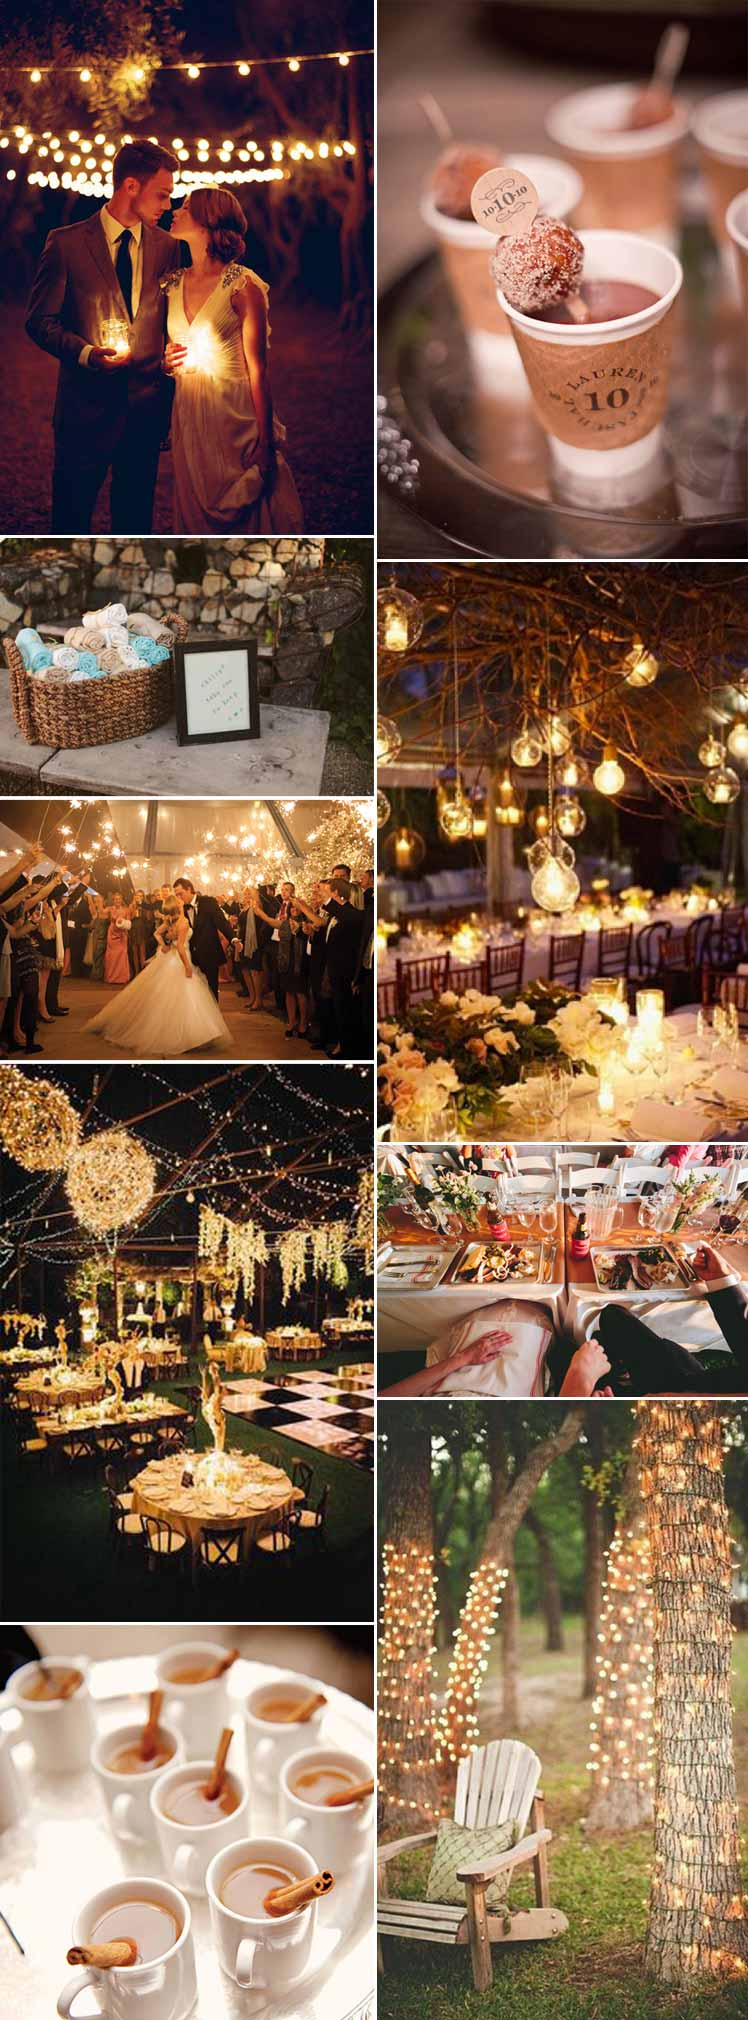 beautiful inspiration for an evening wedding